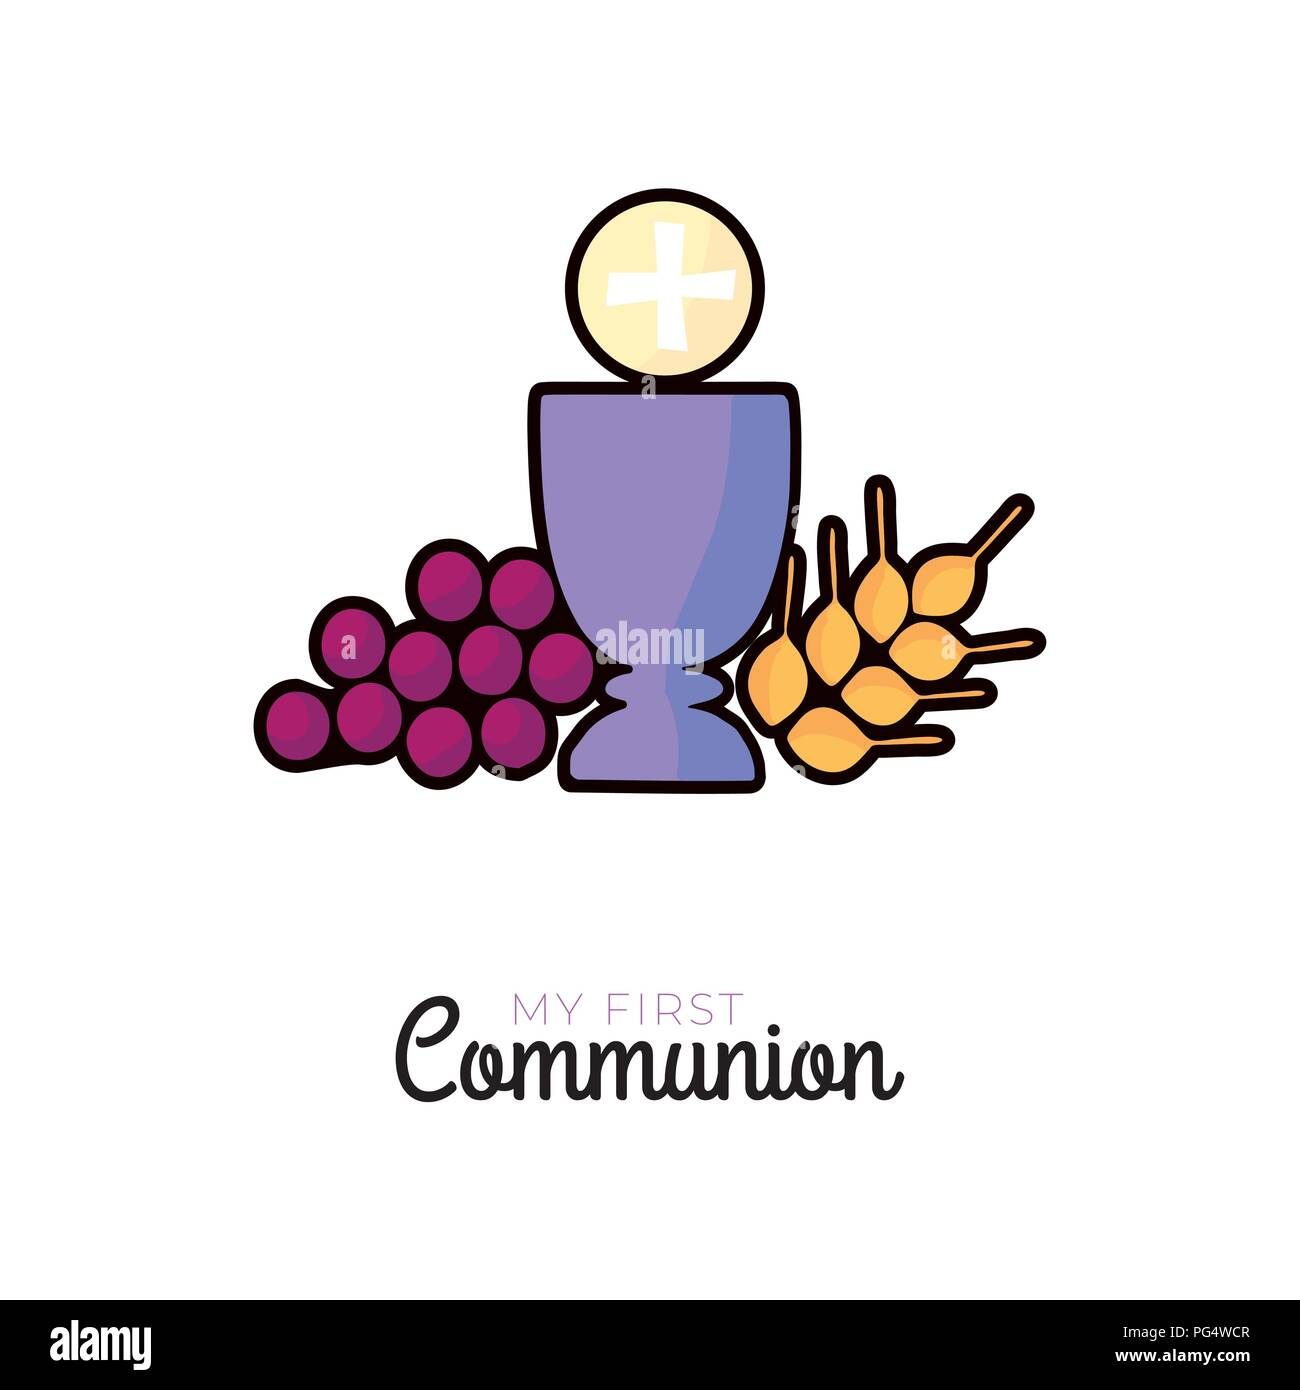 First Communion Symbols For A Nice Invitation Design Church And